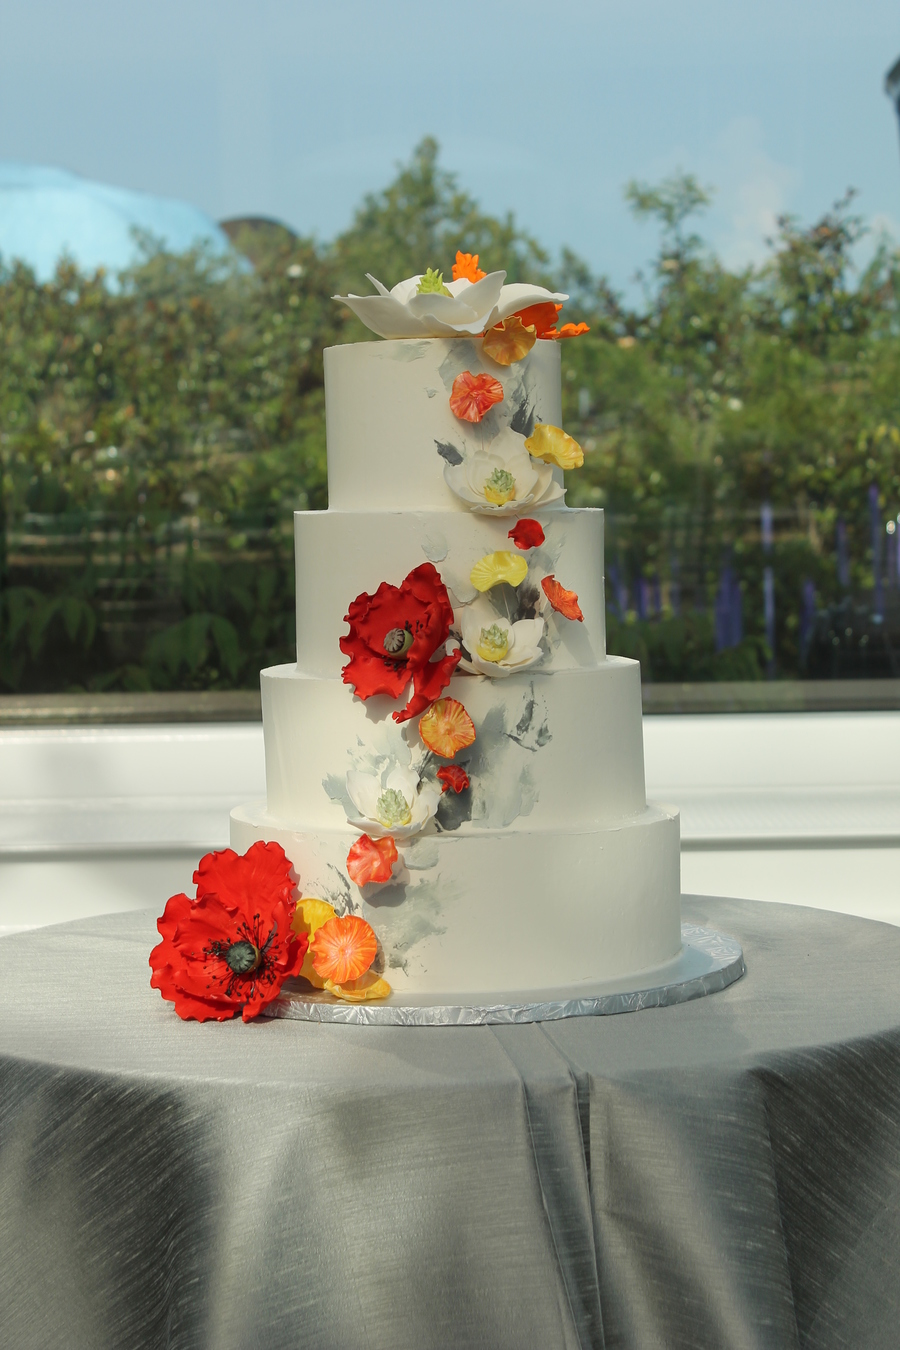 Buttercream Cake With Sugar Flowers For A Modern Look I Used A Palette Knife To Apply Shades Of Grey Buttercream For A Backdrop For The Fl... on Cake Central